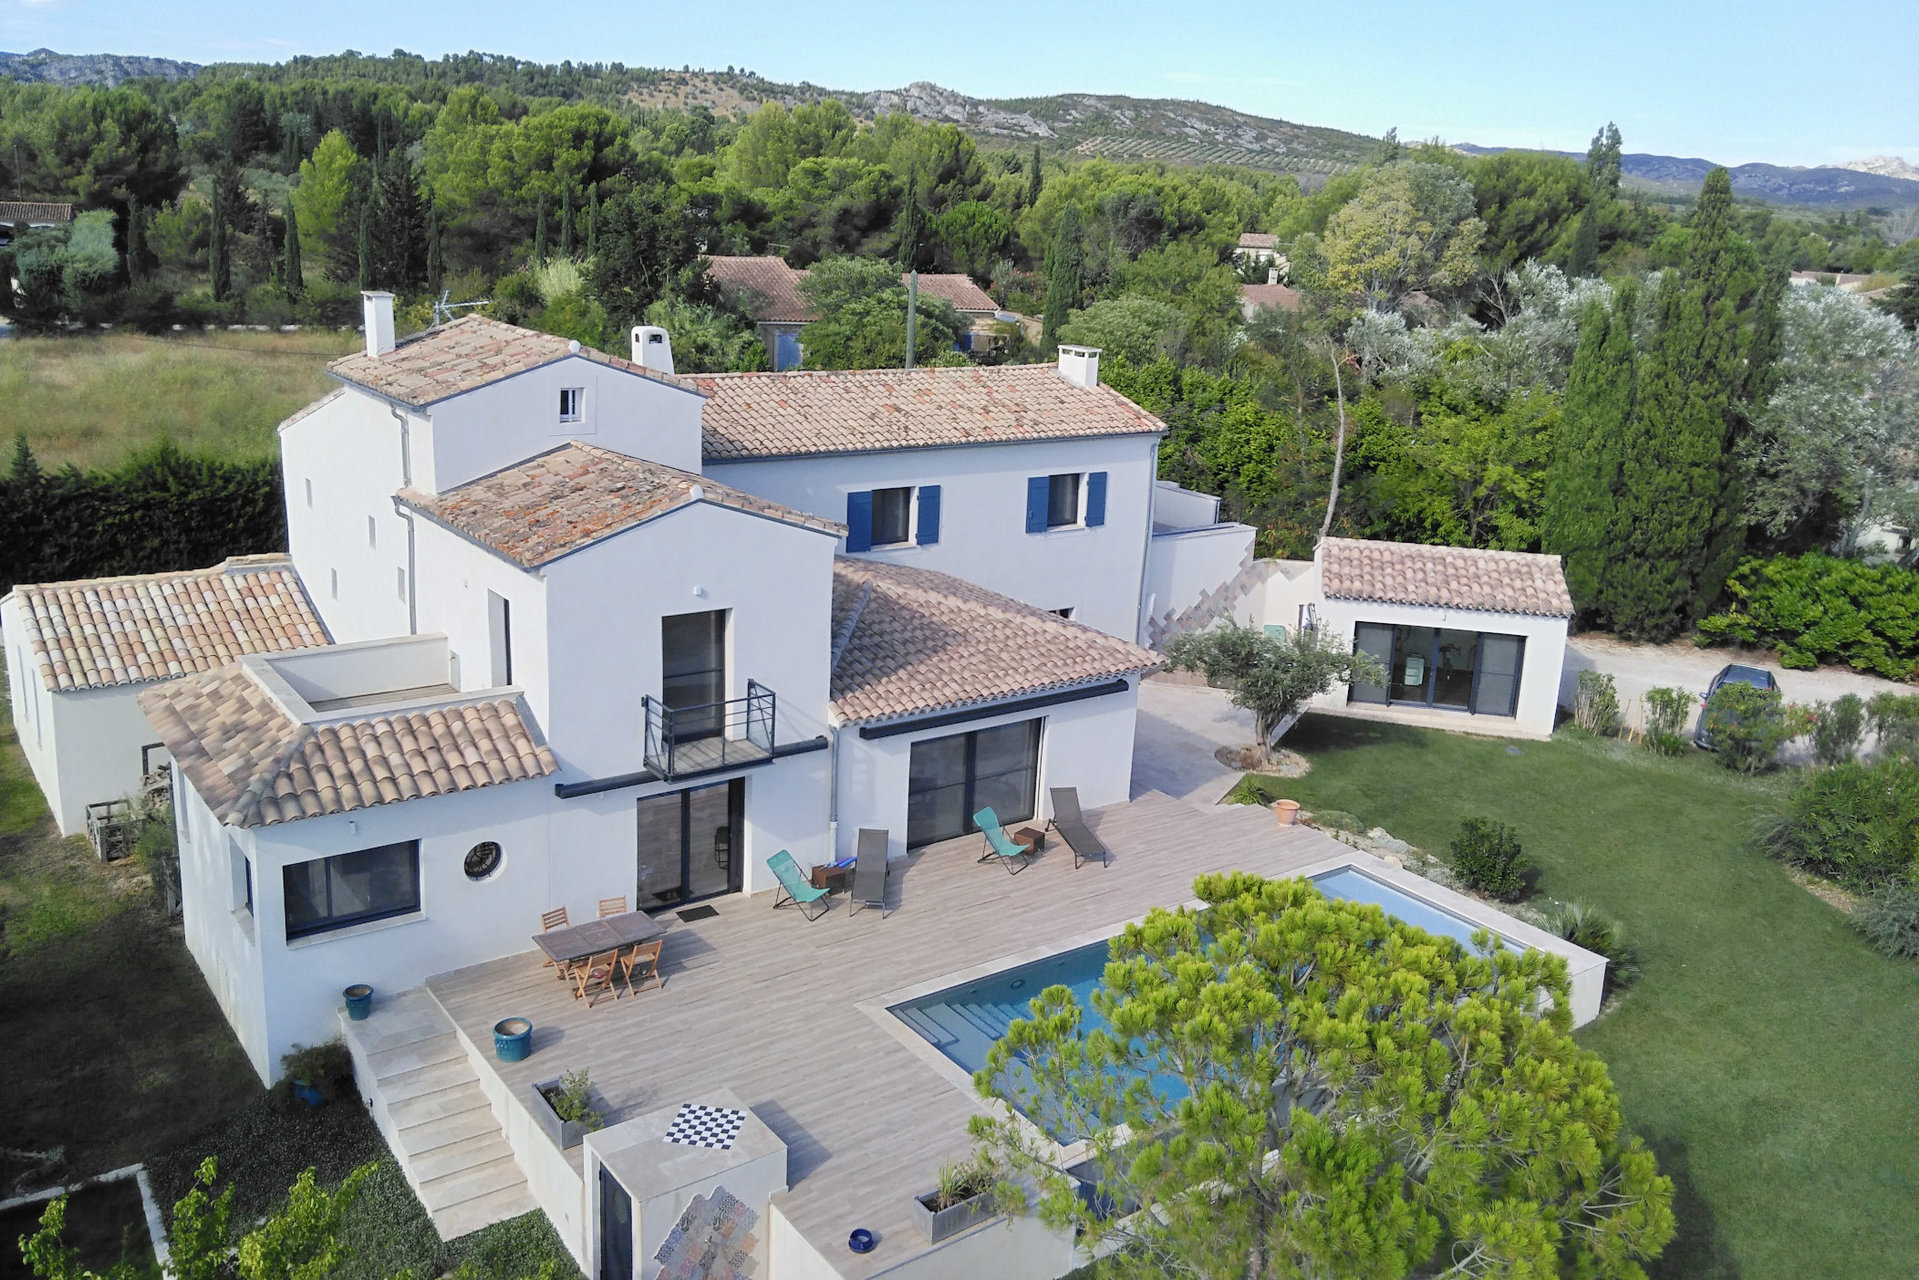 Au coeur d'un des plus beau village des Alpilles, charmante VILLA contemporaine totalisant 400 m² construits.